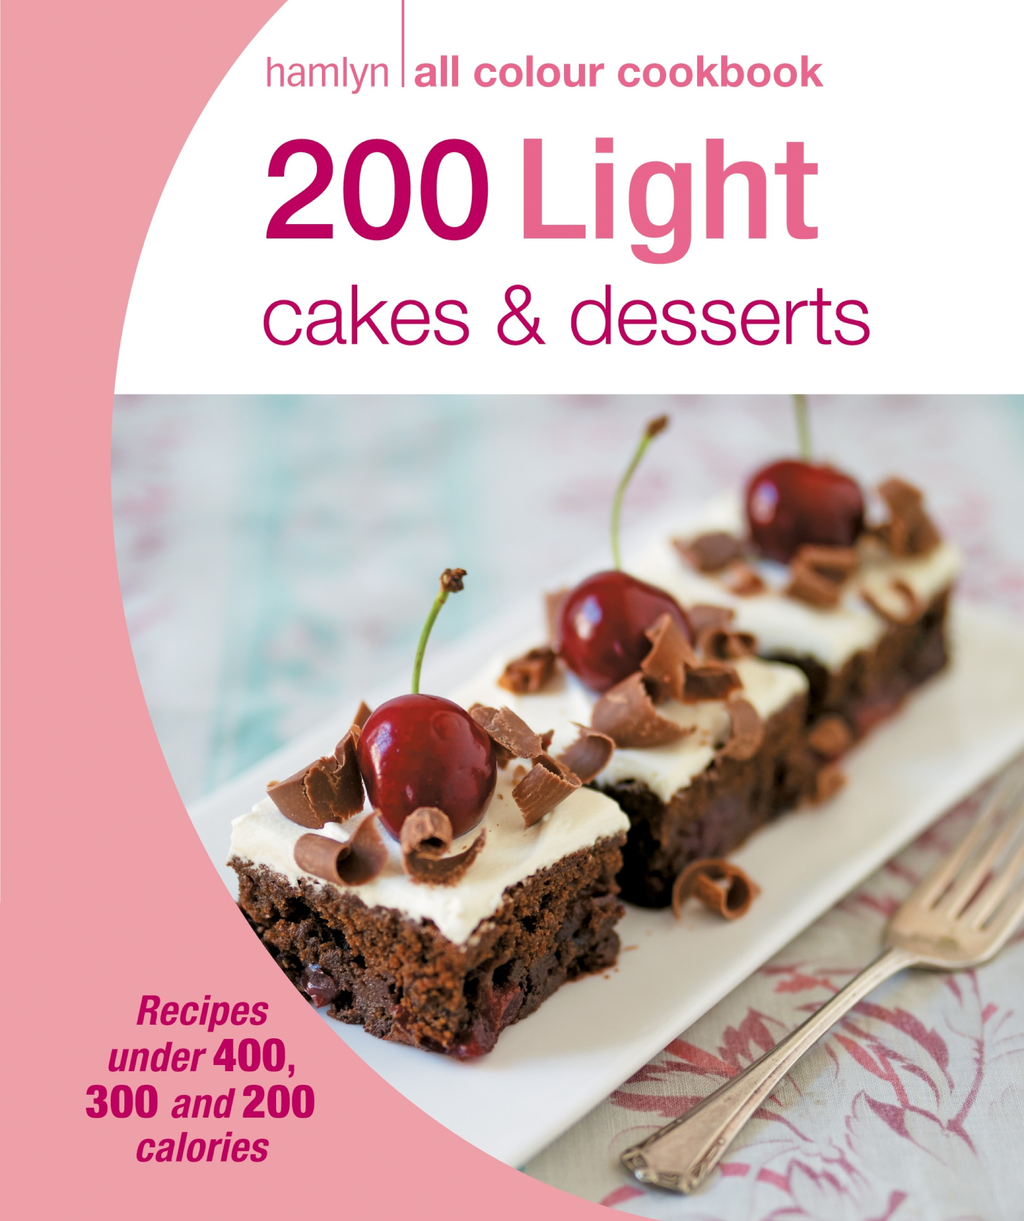 200 Light Cakes & Desserts Hamlyn All Colour Cookbook